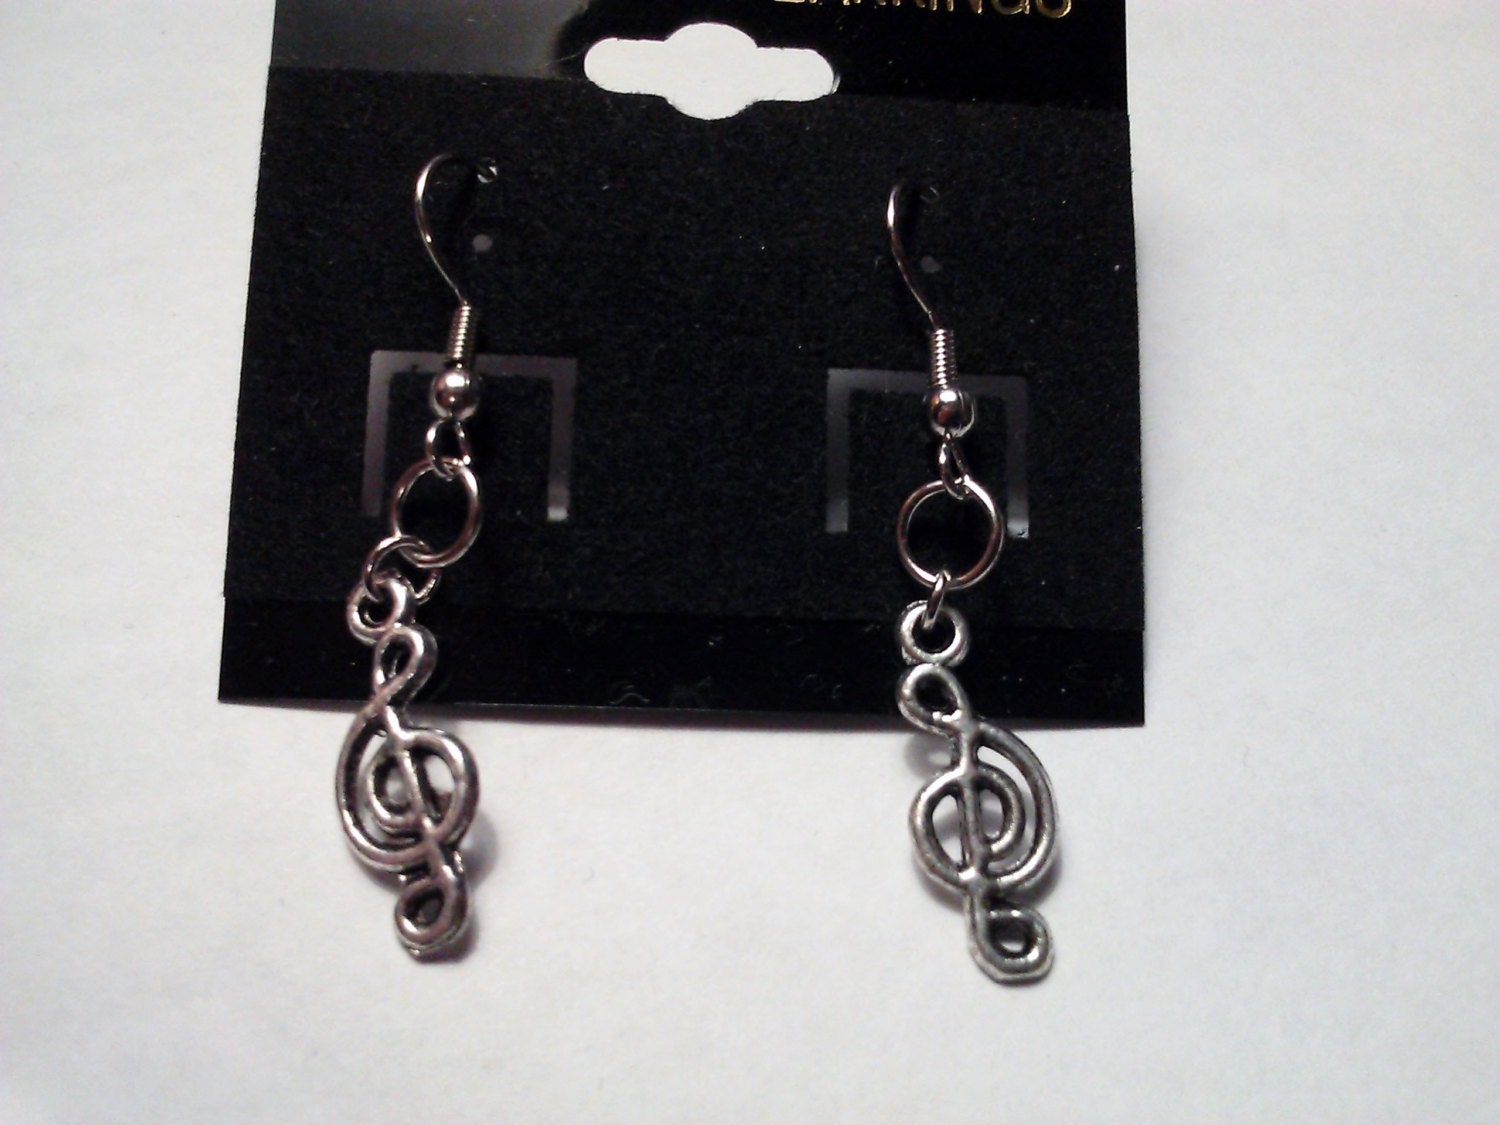 Tibetan Silver Charm Earrings Hand Made with Steel S Hook 10 to choose from Kawaii Kitty Silver Leaf Trinity Knot Music Note Dolphin & Cross